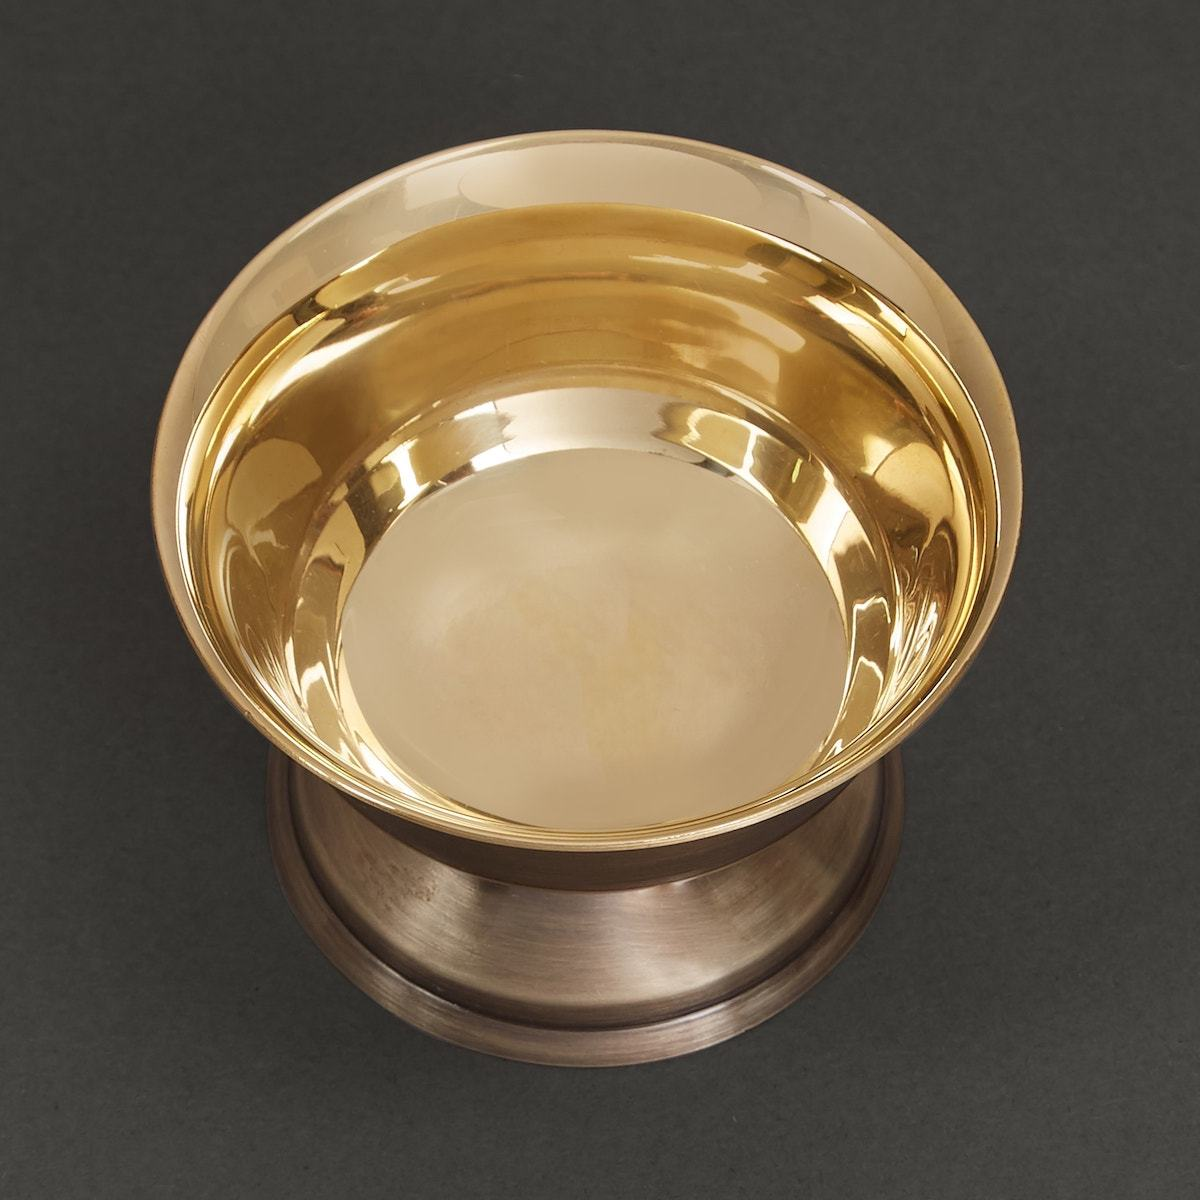 Shiny Gold Brass Dessert Bowl by Ritu Kumar Home - Home Artisan